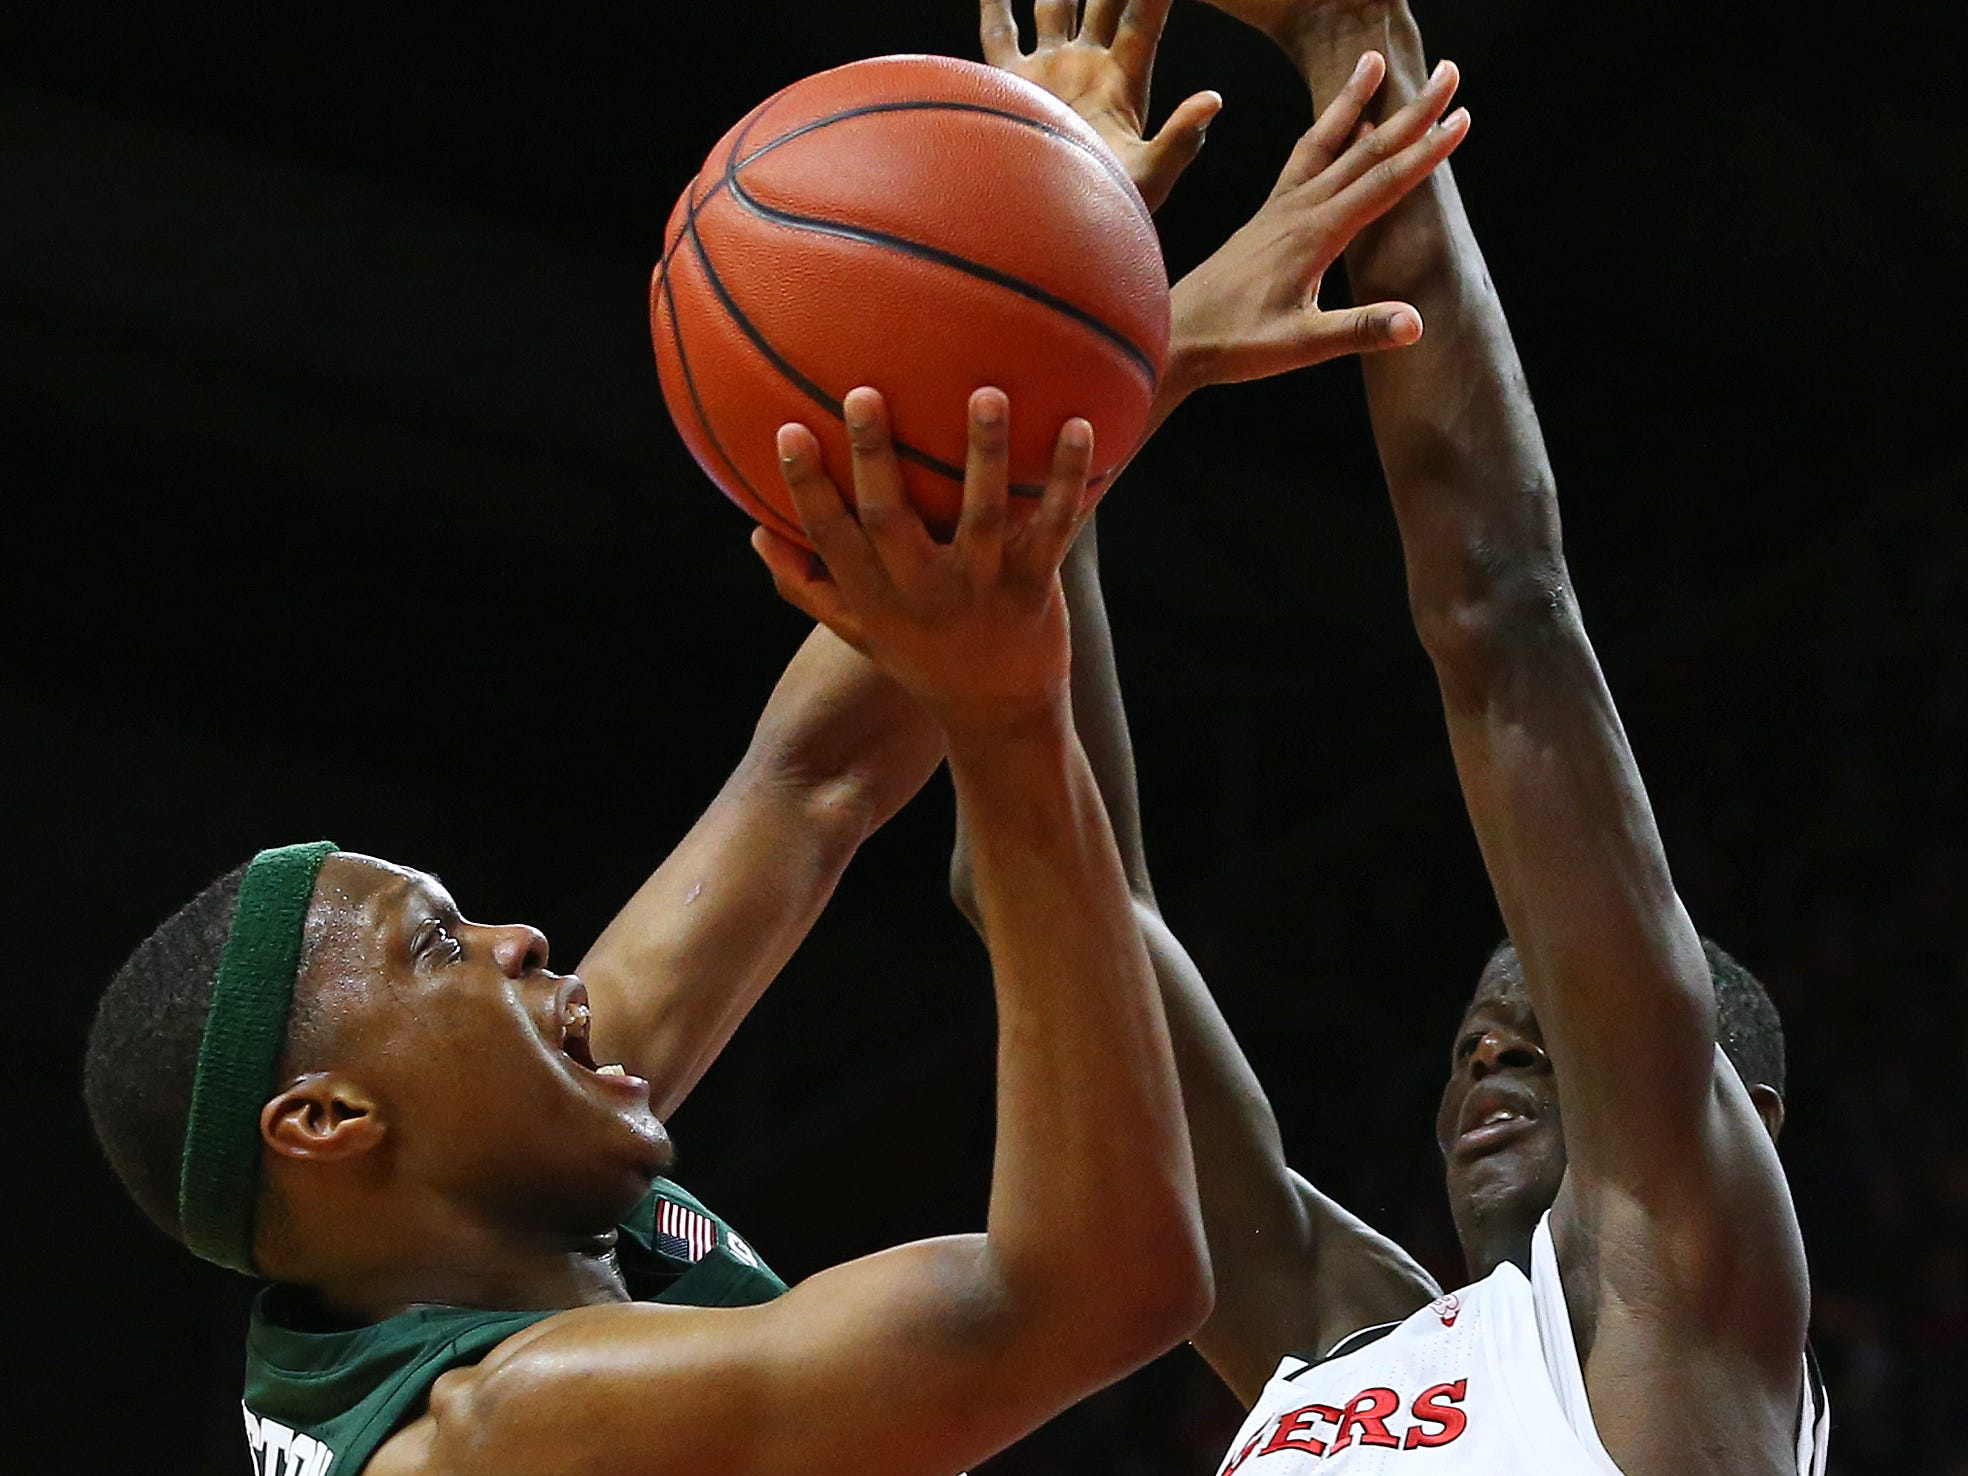 Cassius Winston #5 of the Michigan State Spartans is fouled by Eugene Omoruyi #5 of the Rutgers Scarlet Knights as he attempts a shot during the second half of a college basketball game at the Rutgers Athletic Center on November 30, 2018 in Piscataway, New Jersey. Michigan State defeated Rutgers 78-67.